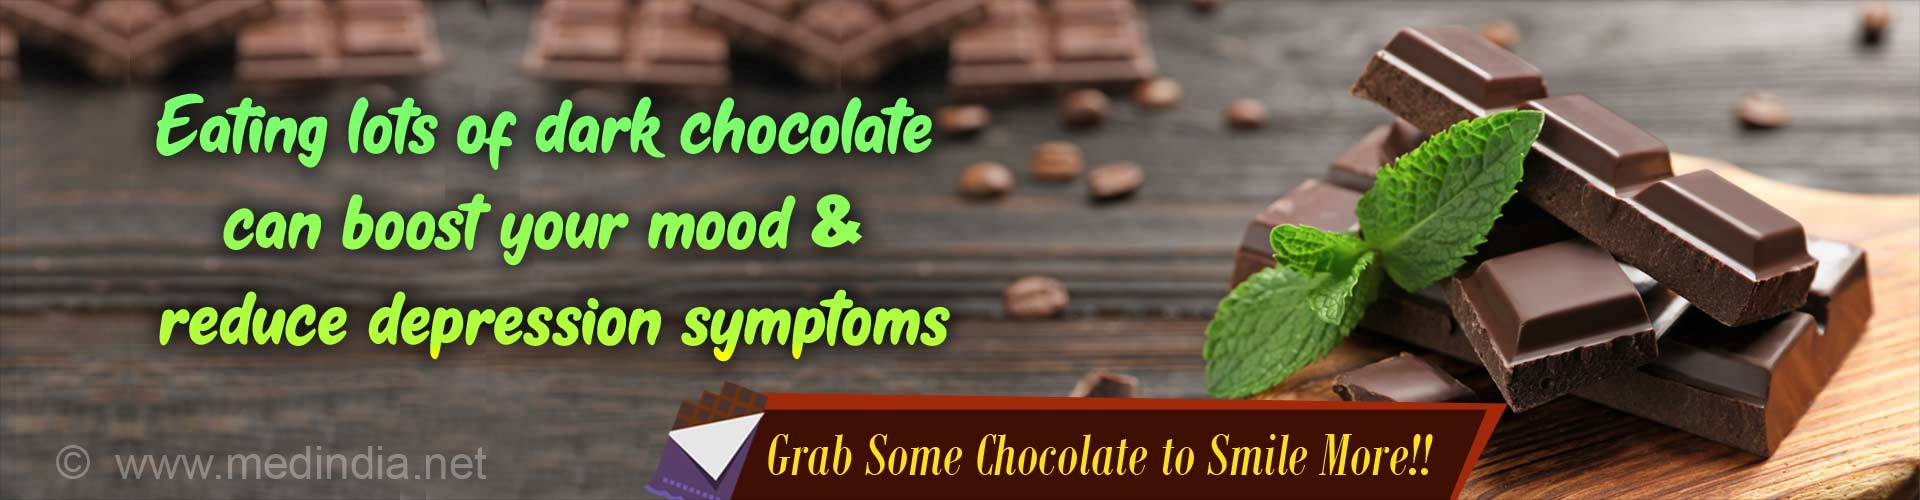 Dark Chocolate can Ward Off Depression Symptoms